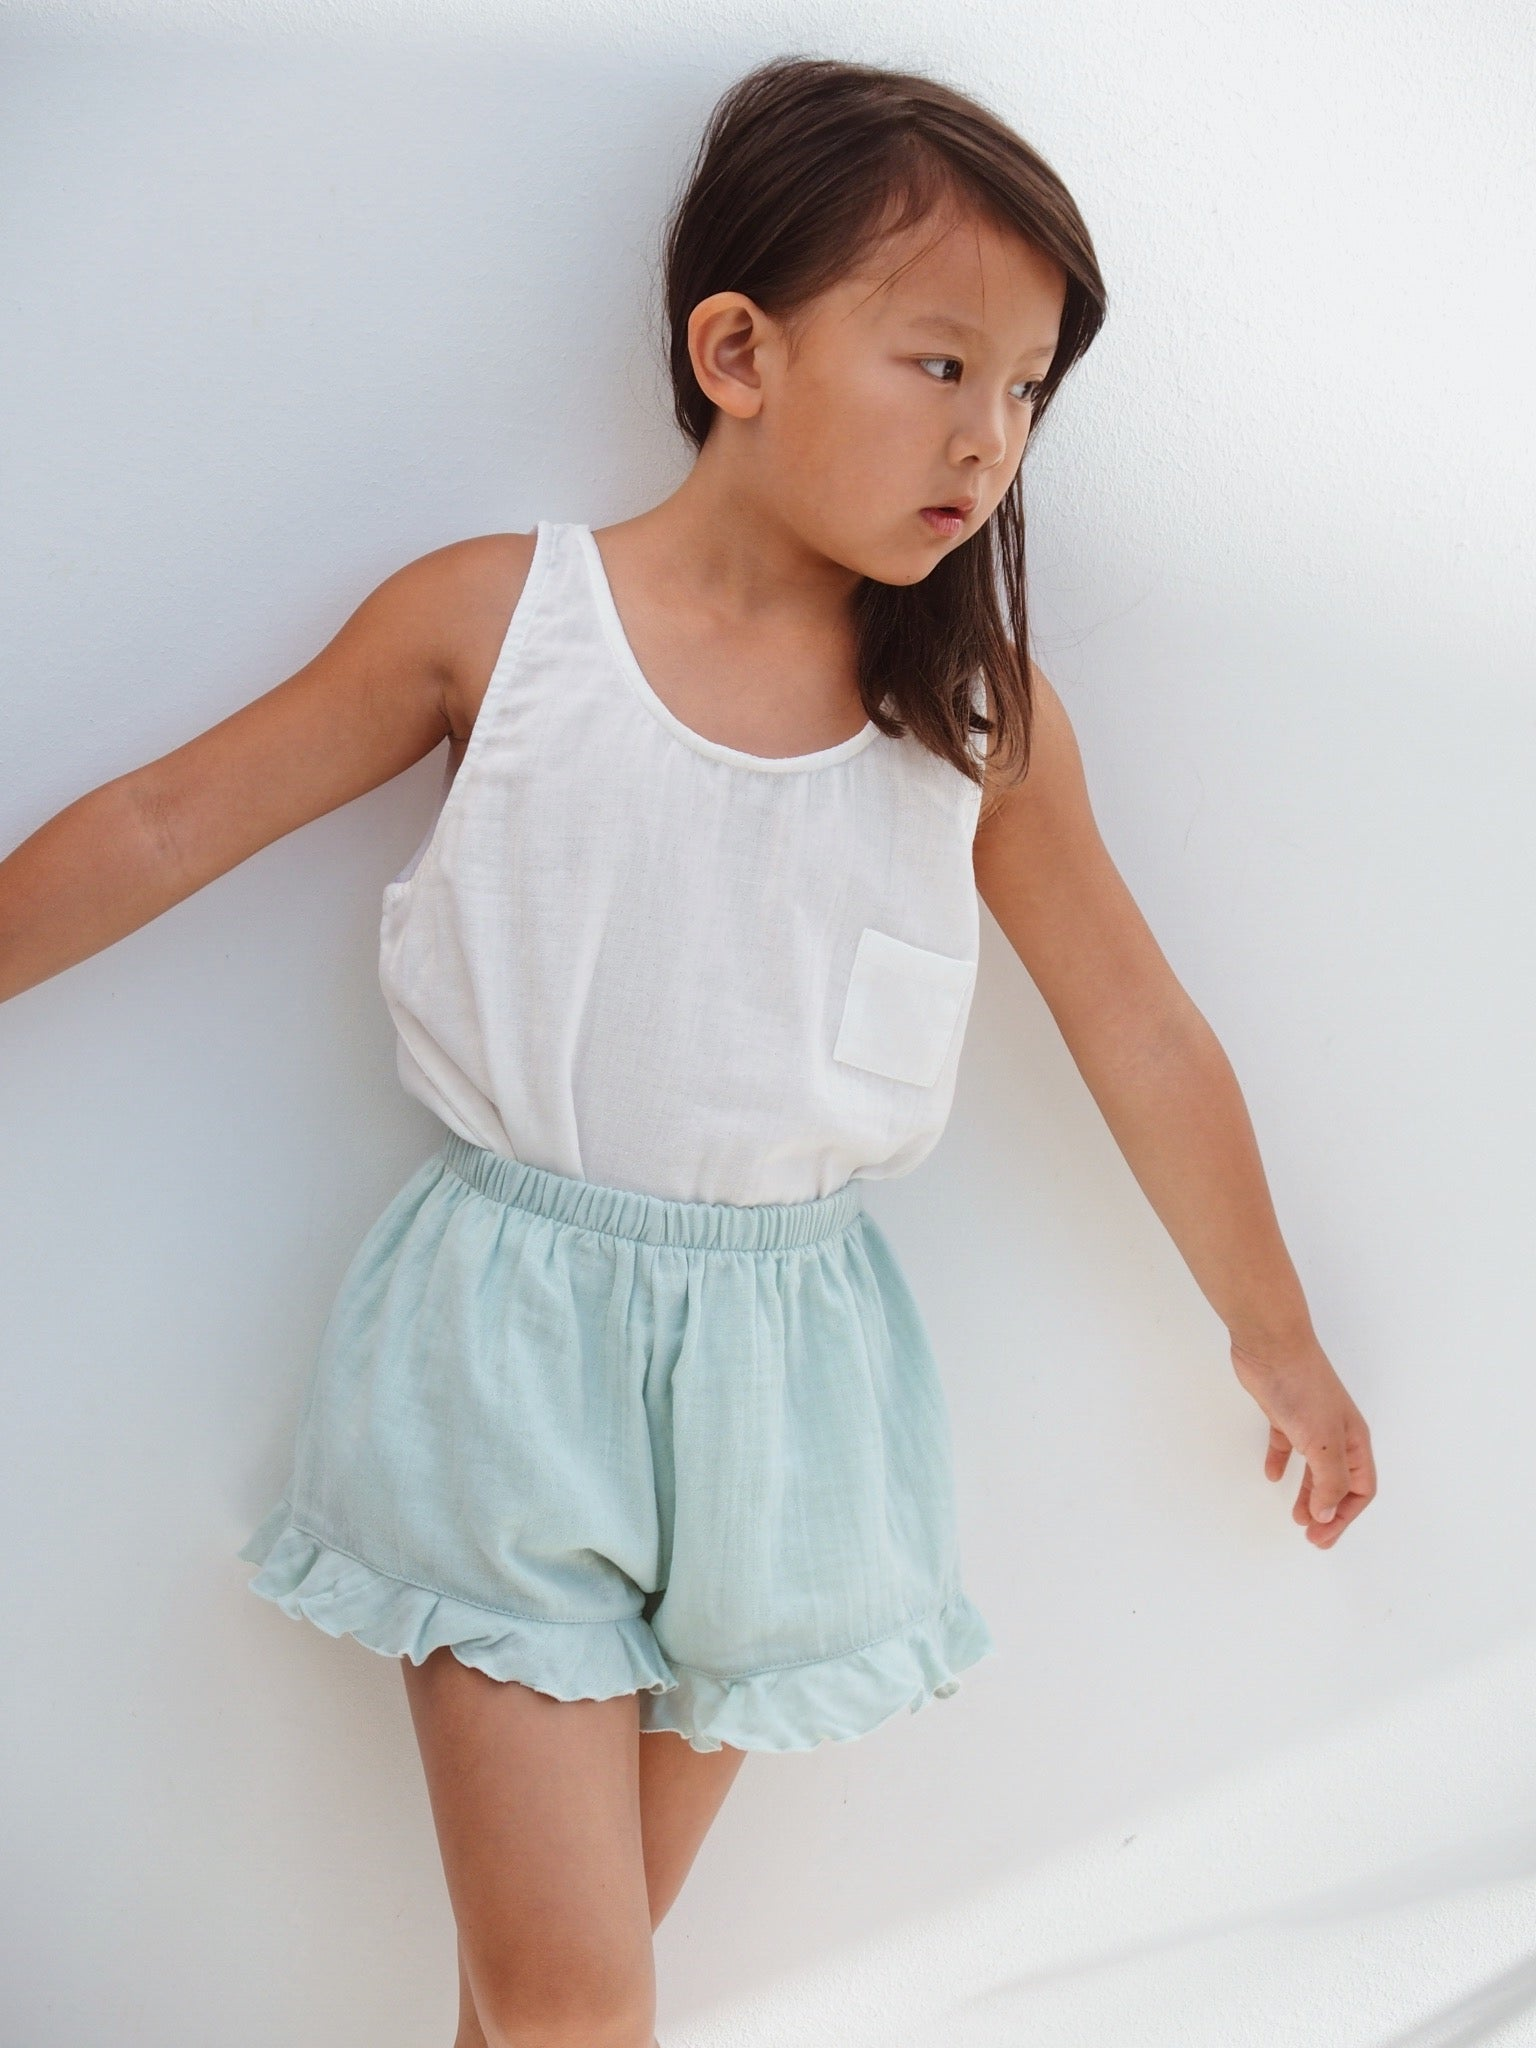 Liilu Tank Top + Sara Shorts